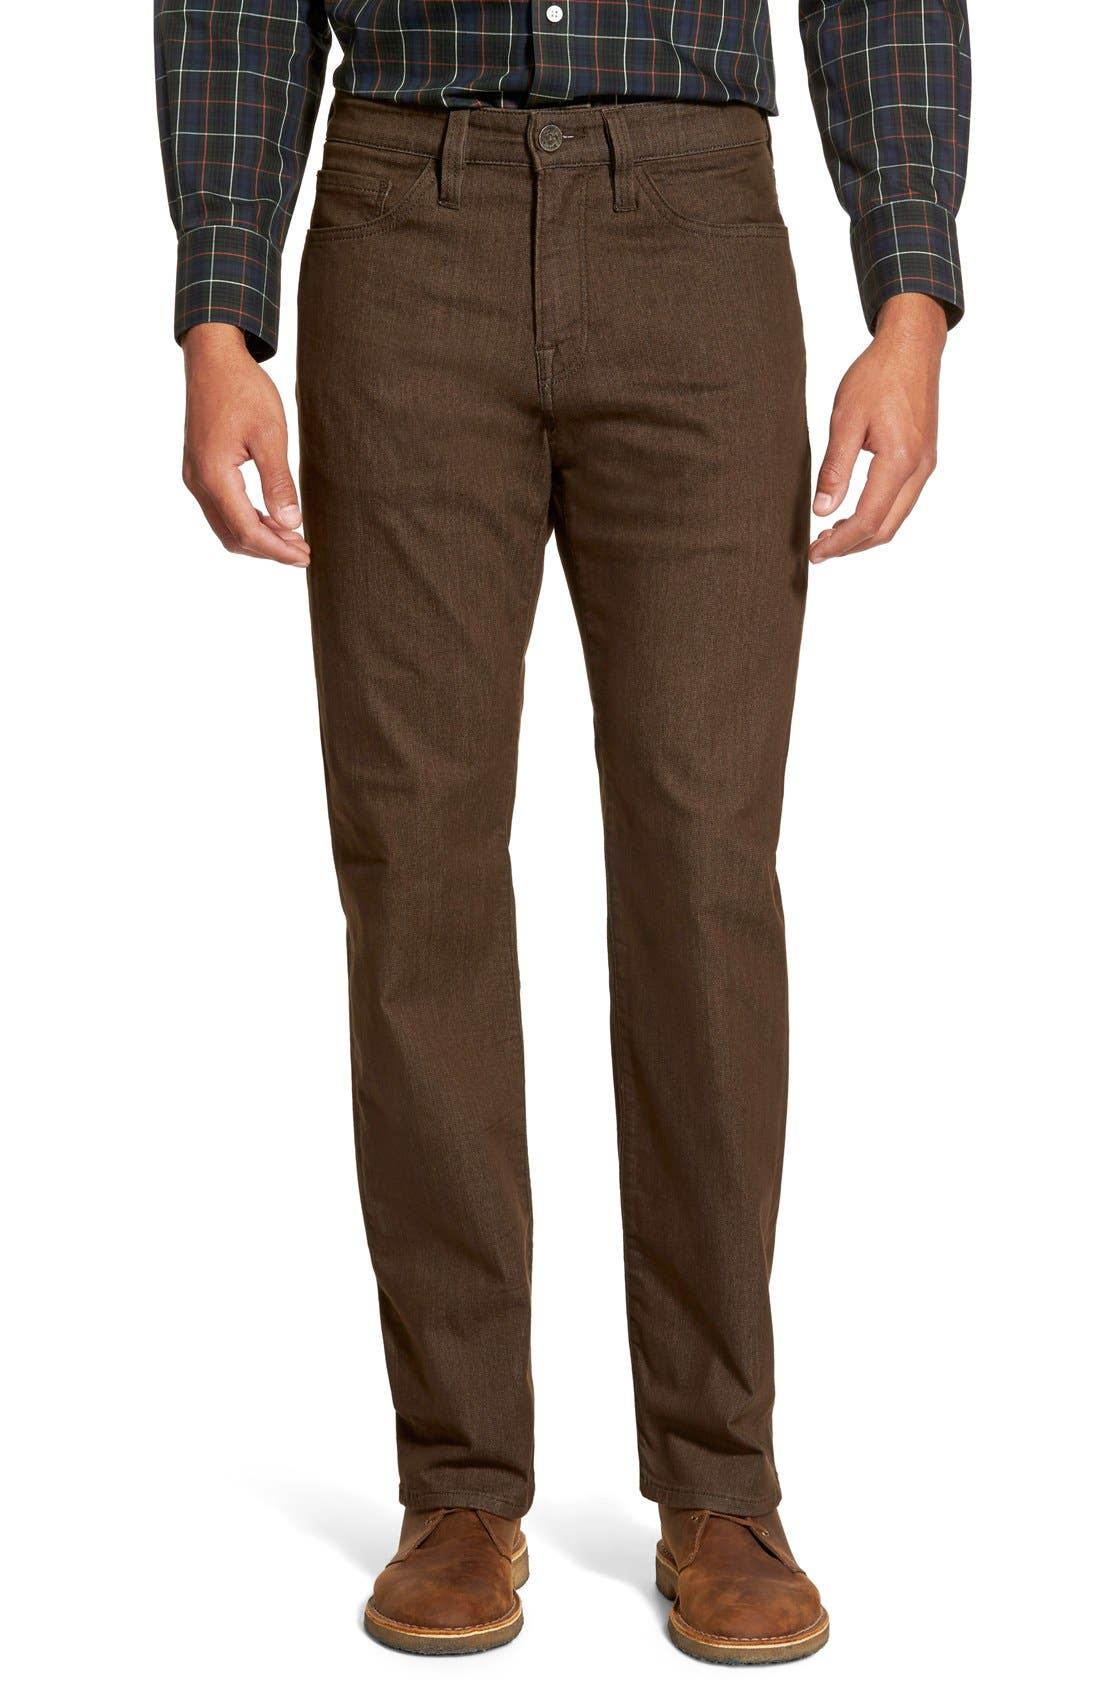 'Charisma' Relaxed Fit Jeans,                         Main,                         color, Brown Comfort